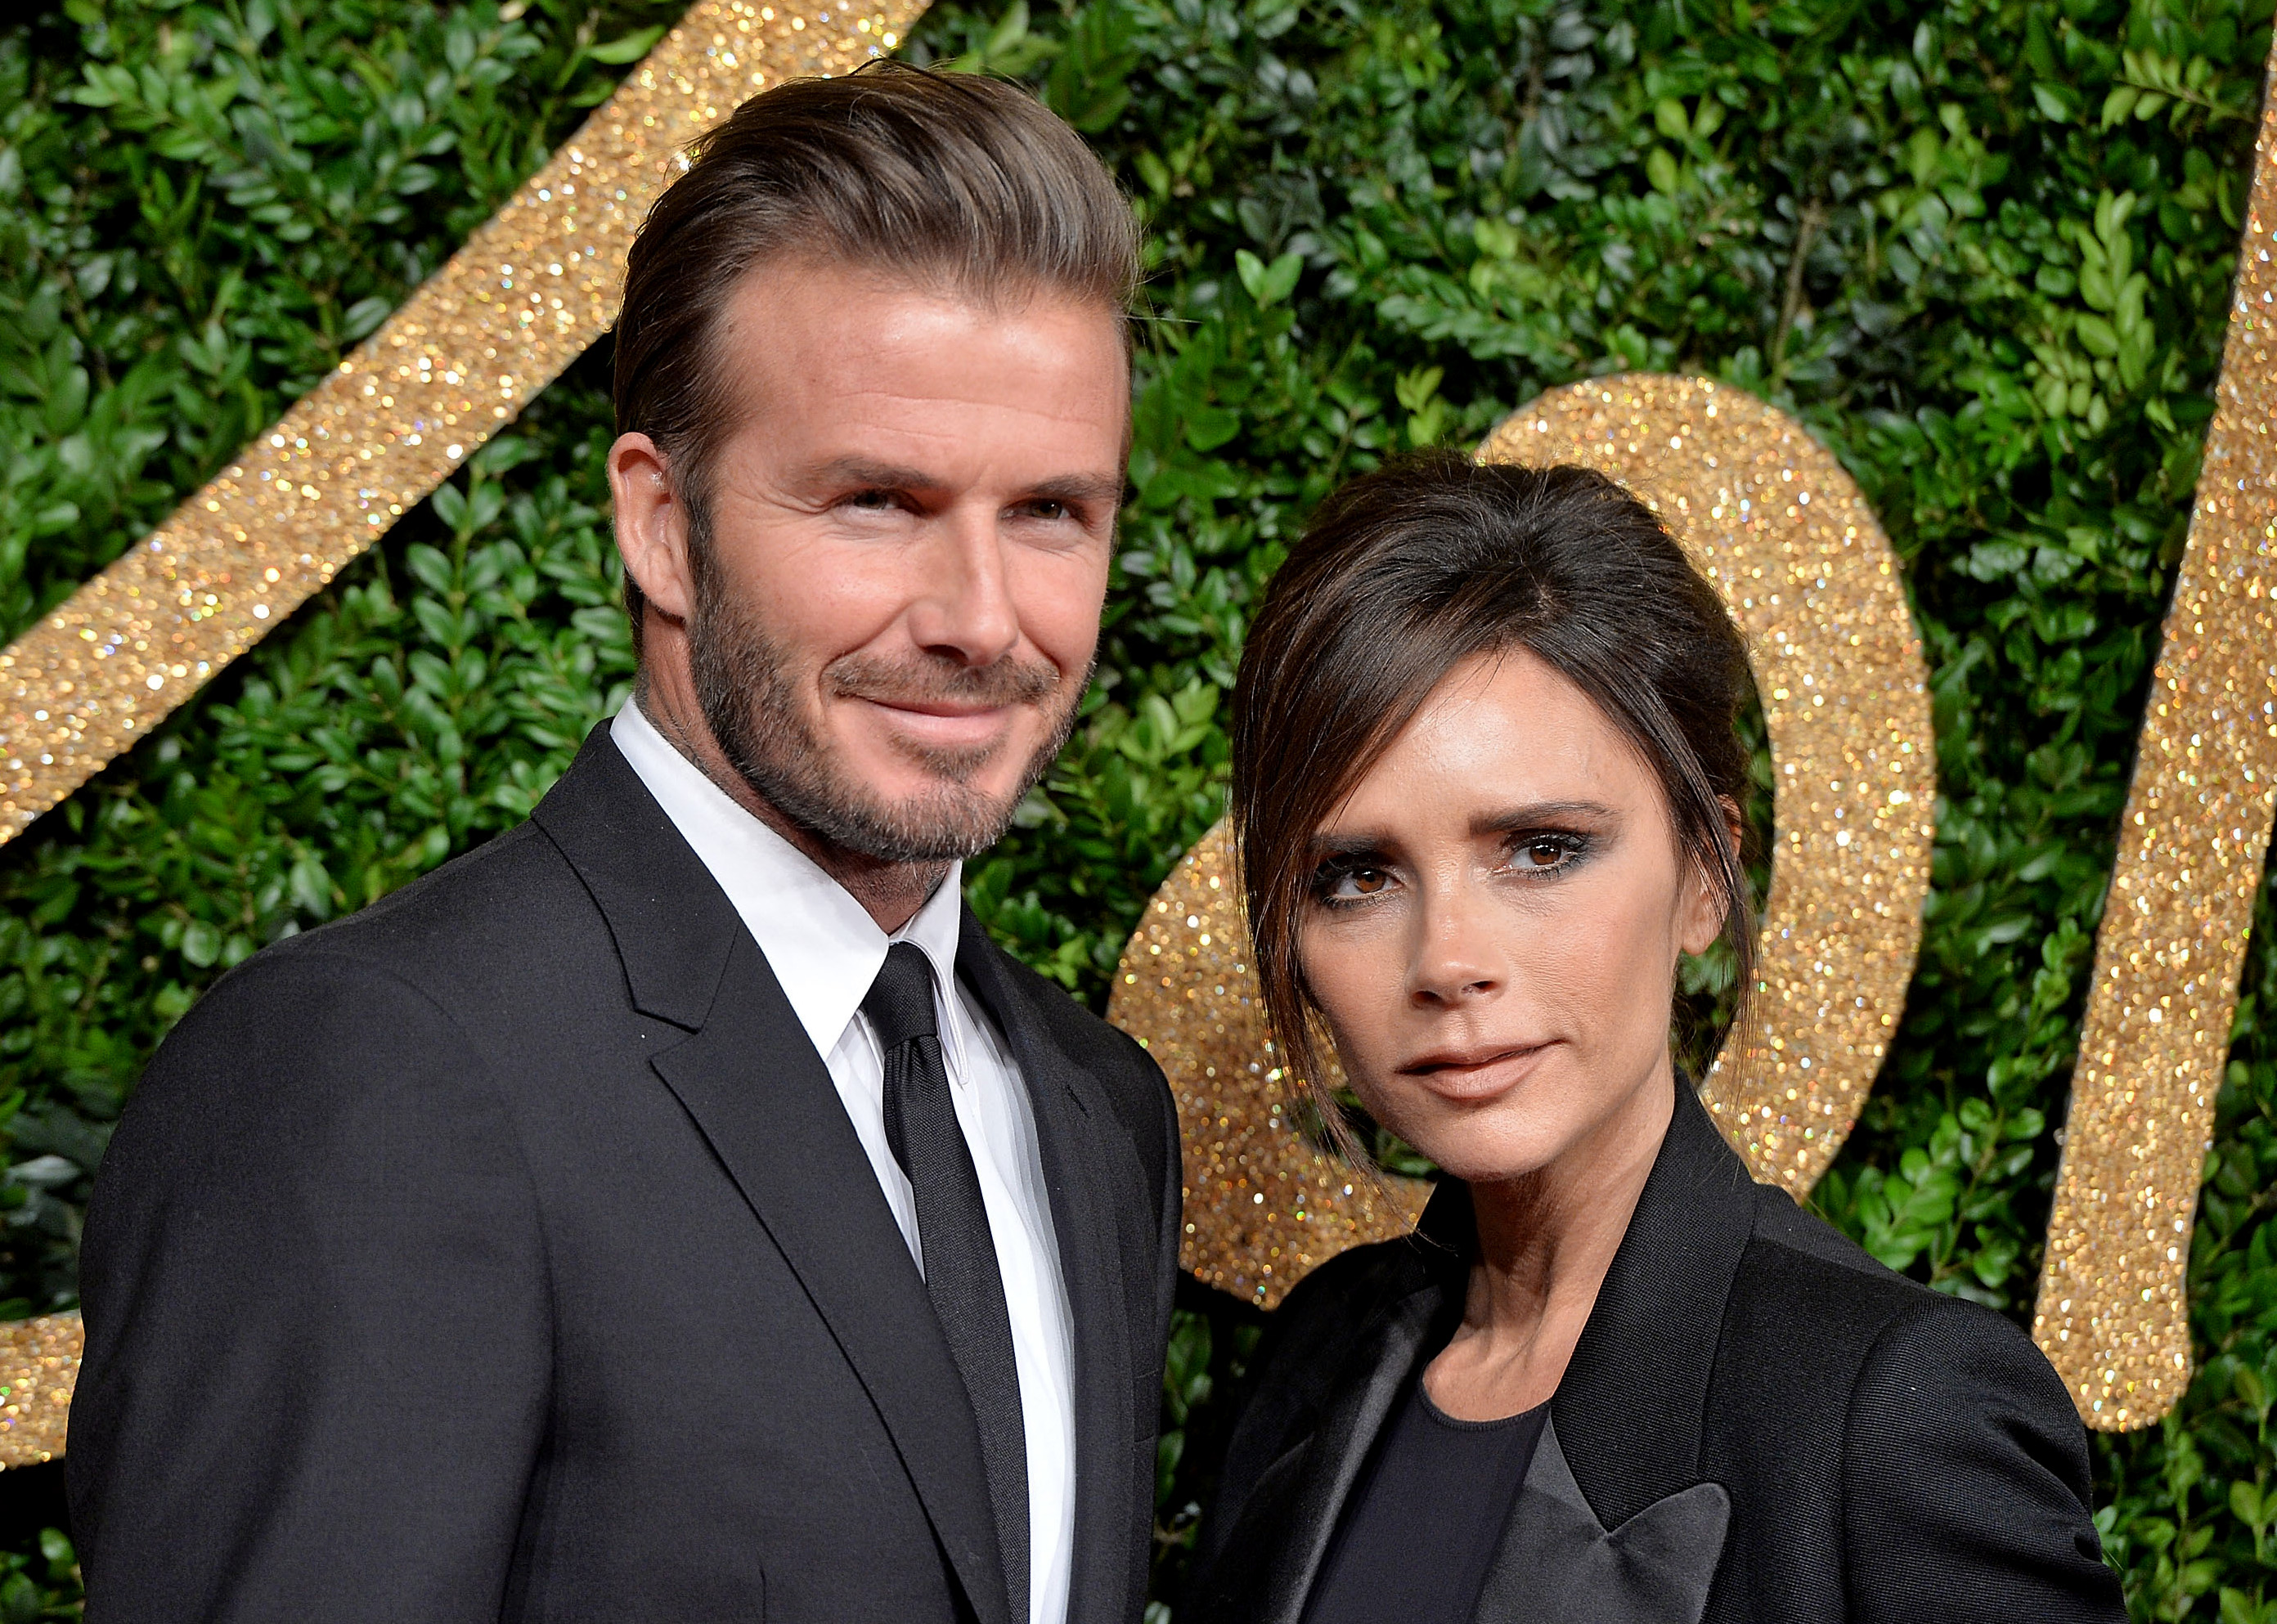 Victoria Beckham opened up about falling in love with David, and they remain perfect as always